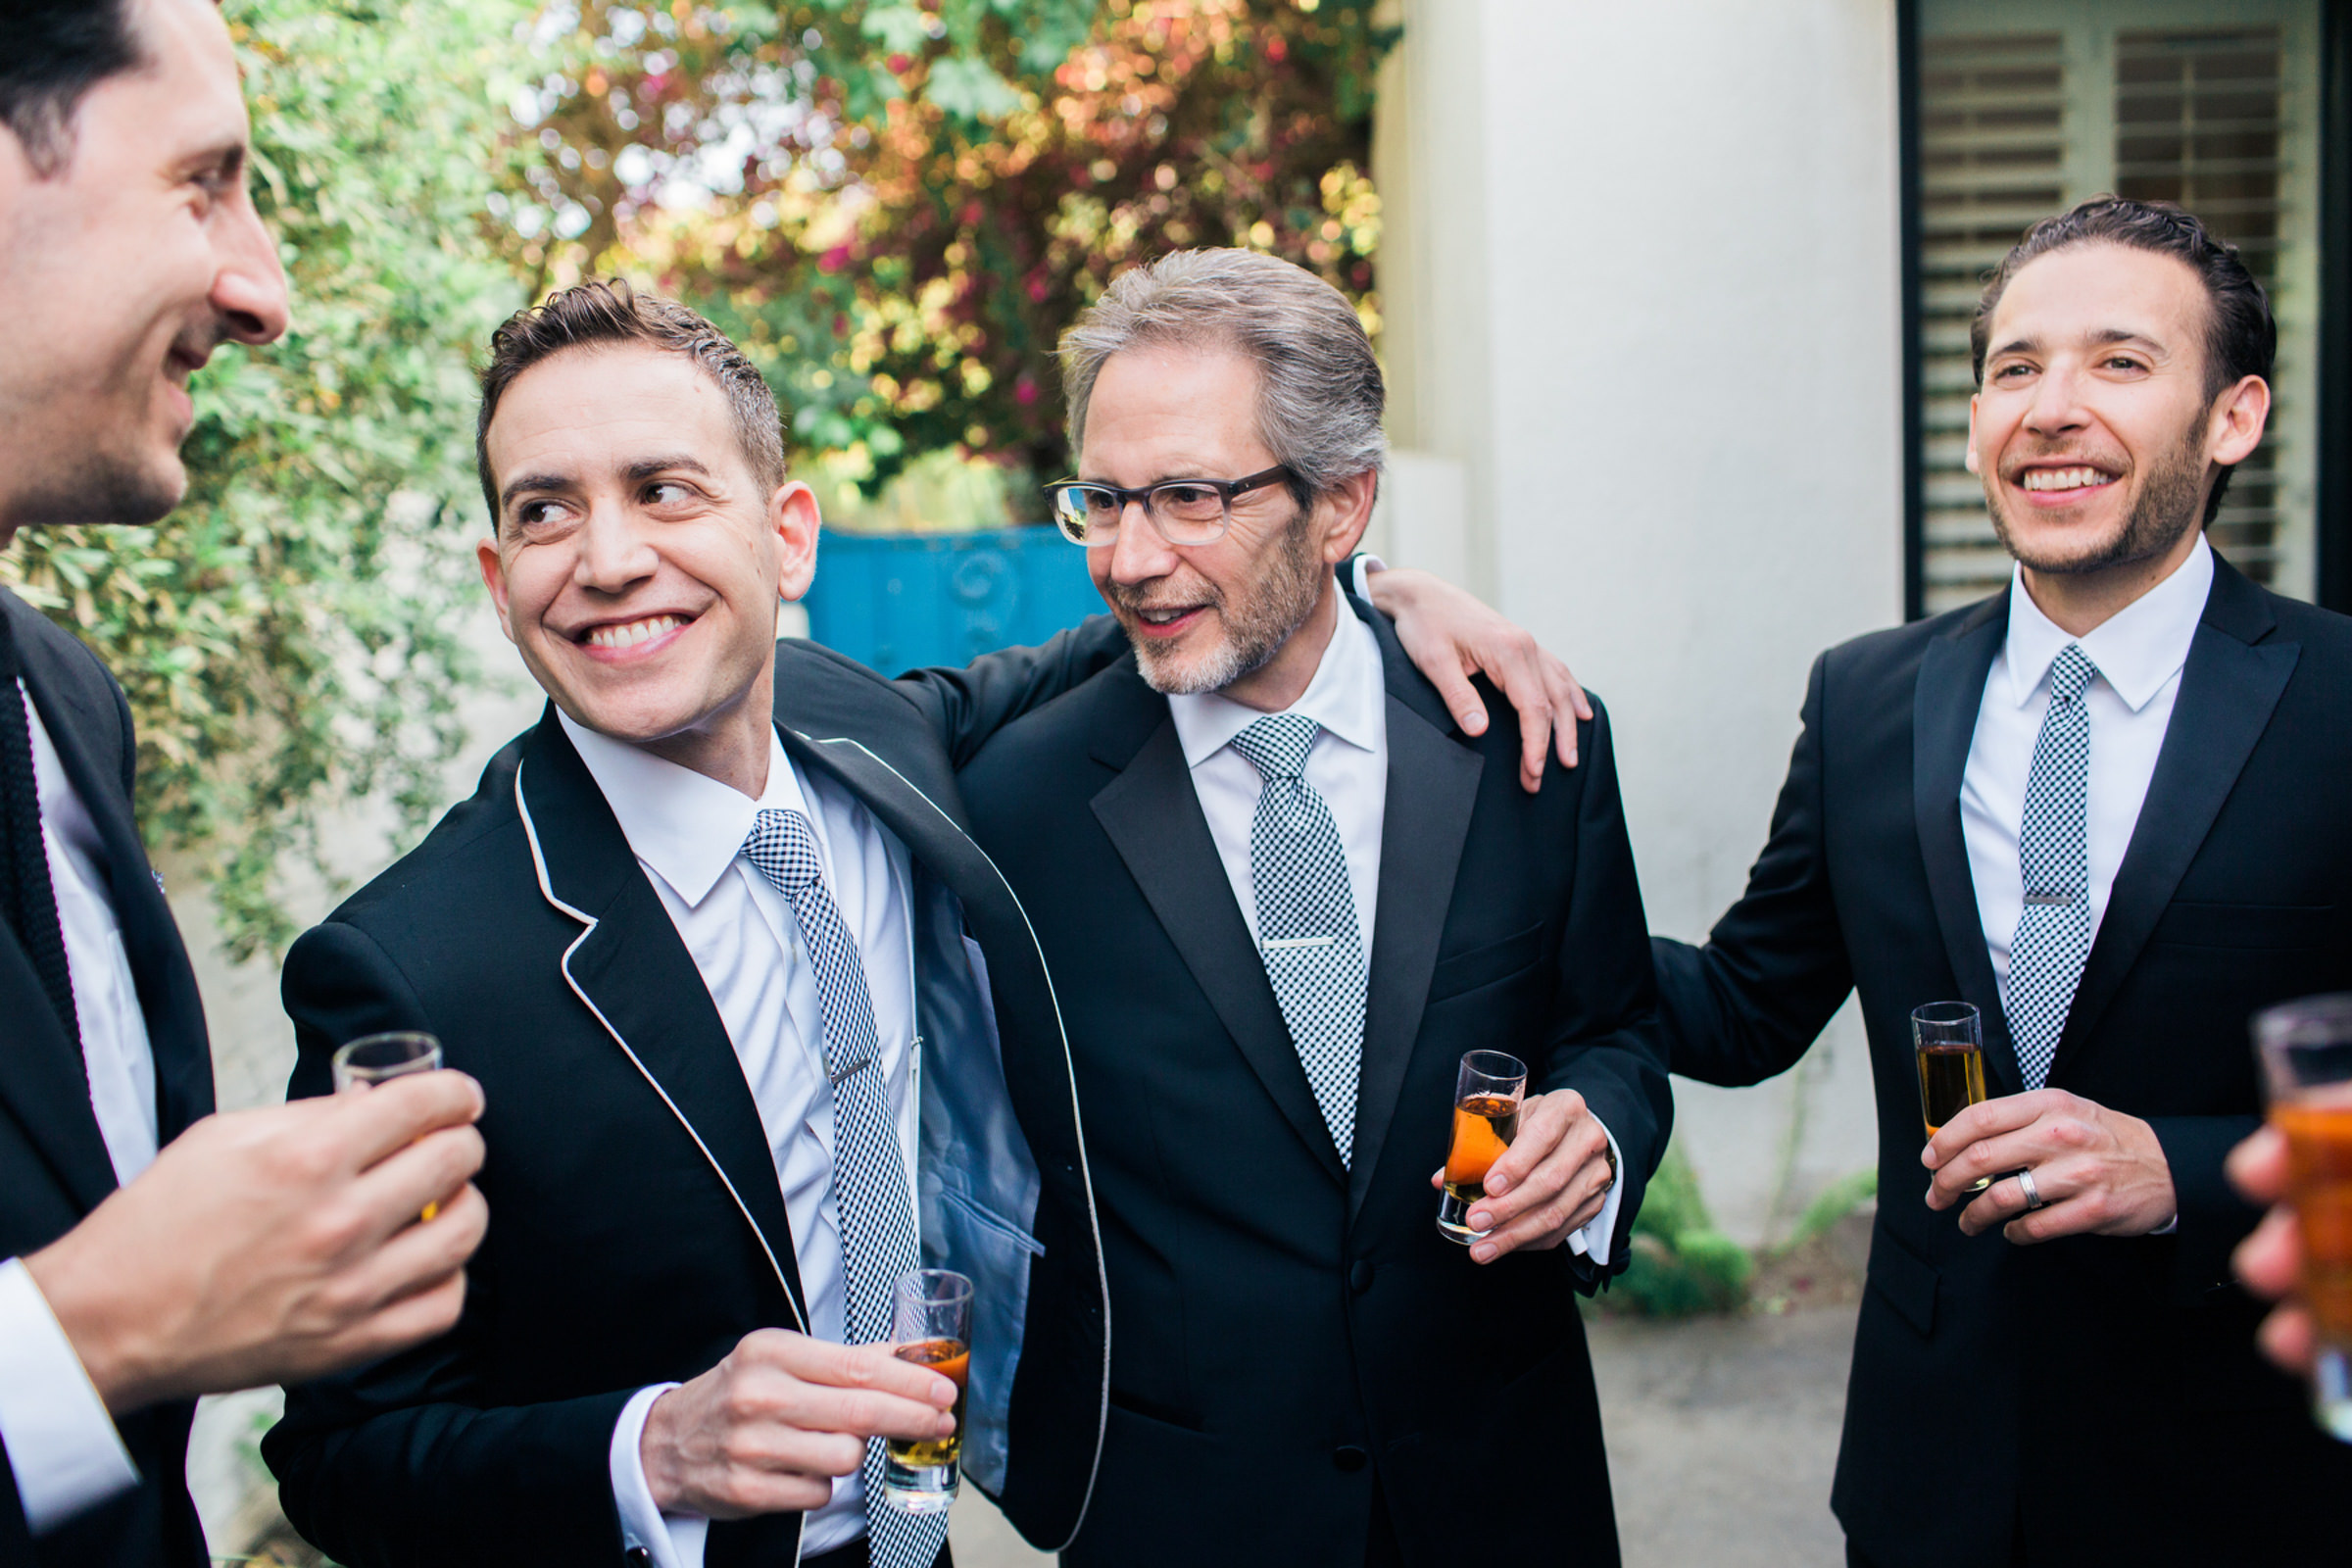 Candid portrait of groomsmen and family  -  photo by Corbin Gurkin